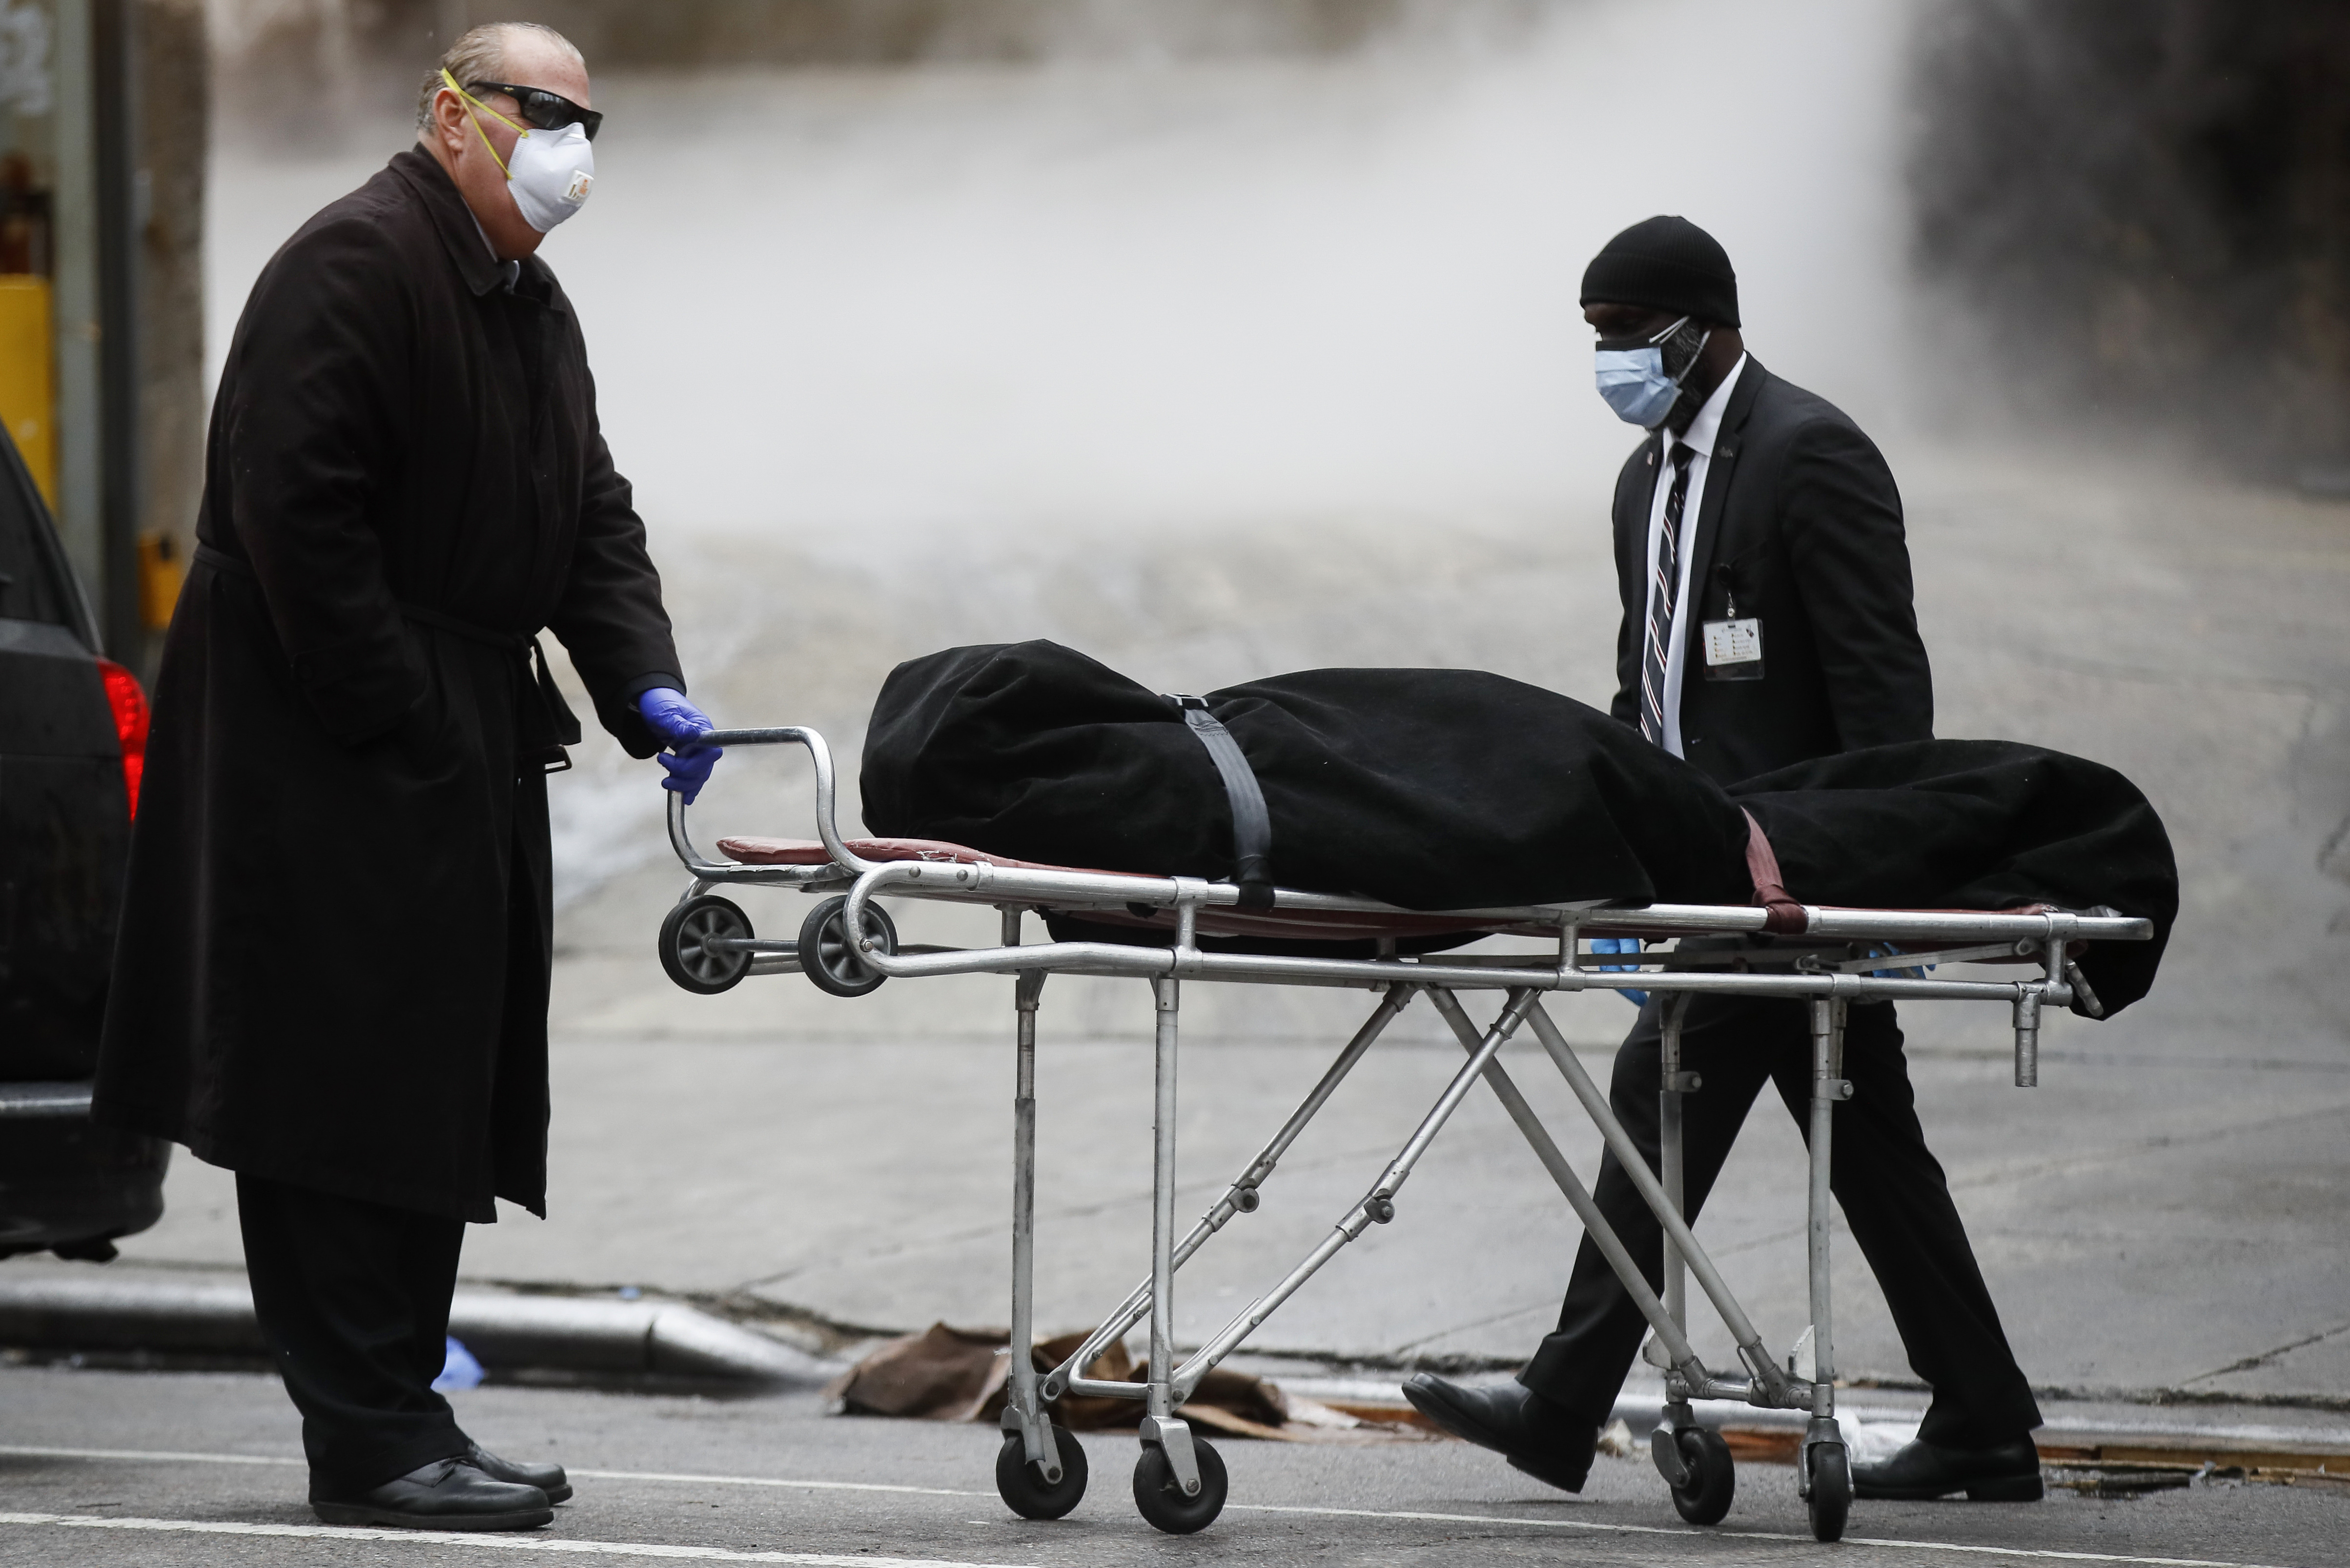 A funeral director wheels a body outside The Brooklyn Hospital Center in Brooklyn, New York, on April 9.